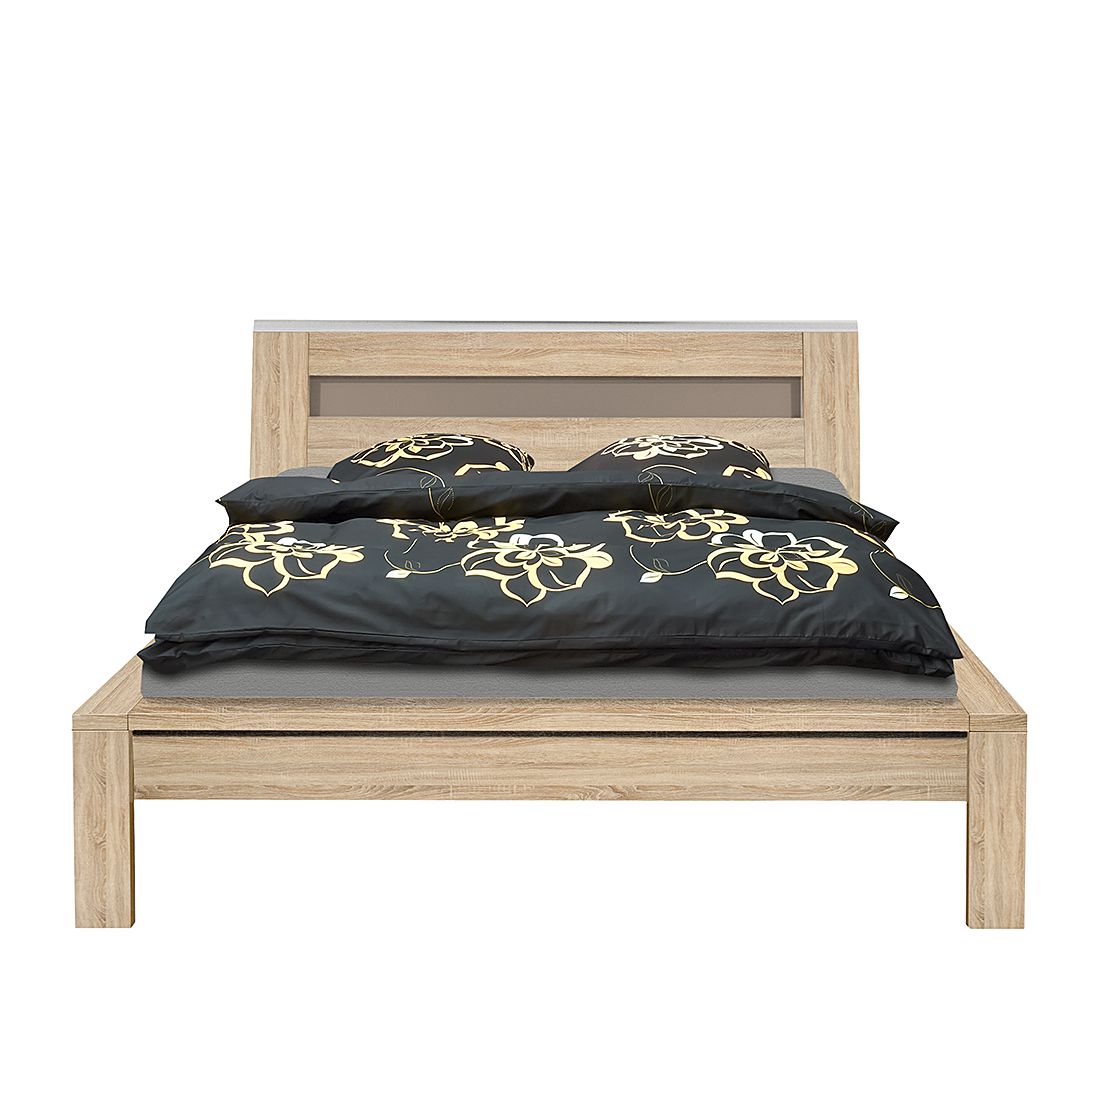 bett trends ii 180 x 200cm eiche dekor glas steingrau arte m online kaufen. Black Bedroom Furniture Sets. Home Design Ideas